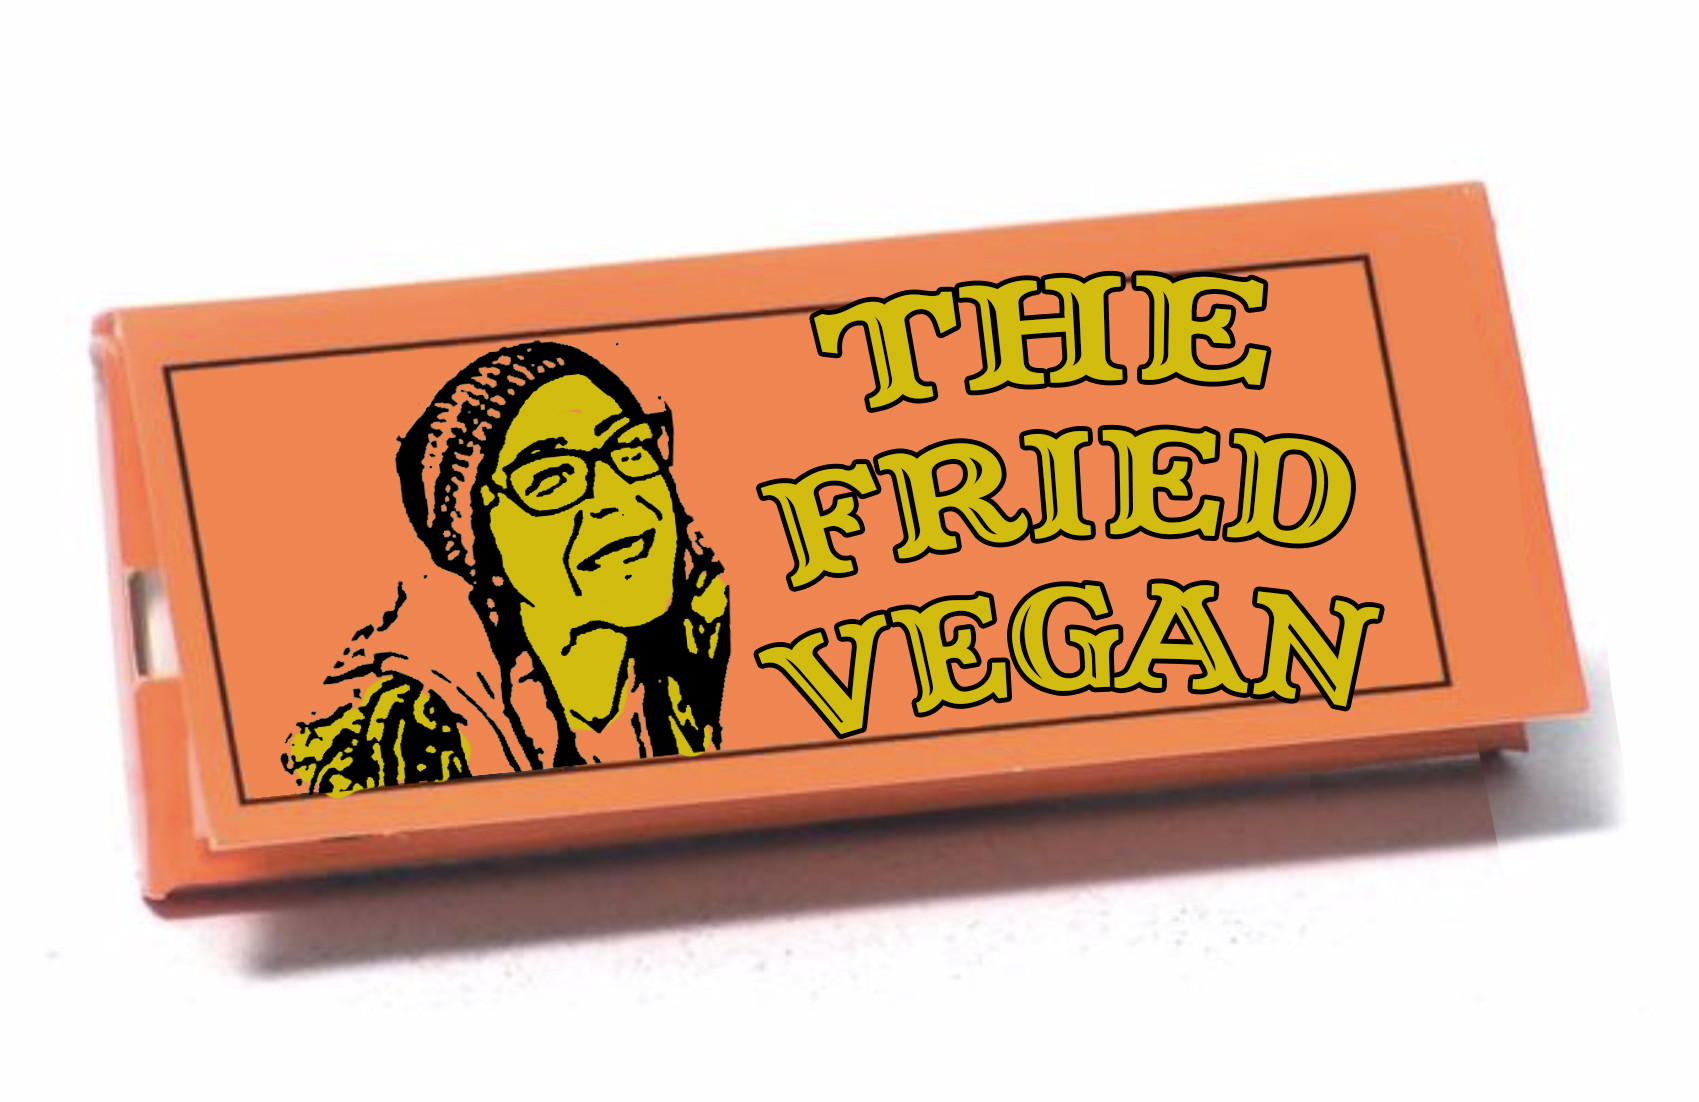 The Fried Vegan